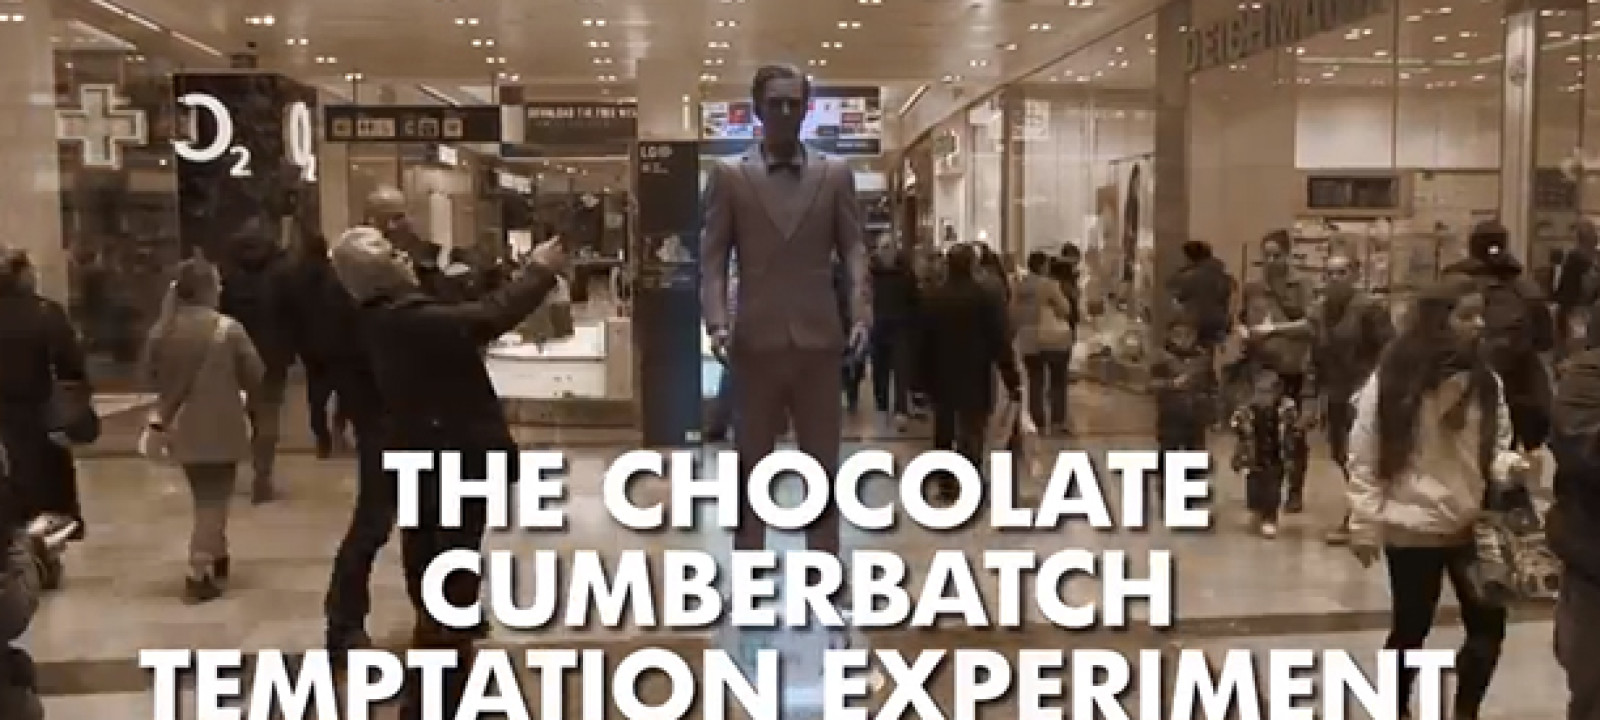 Chocobatch